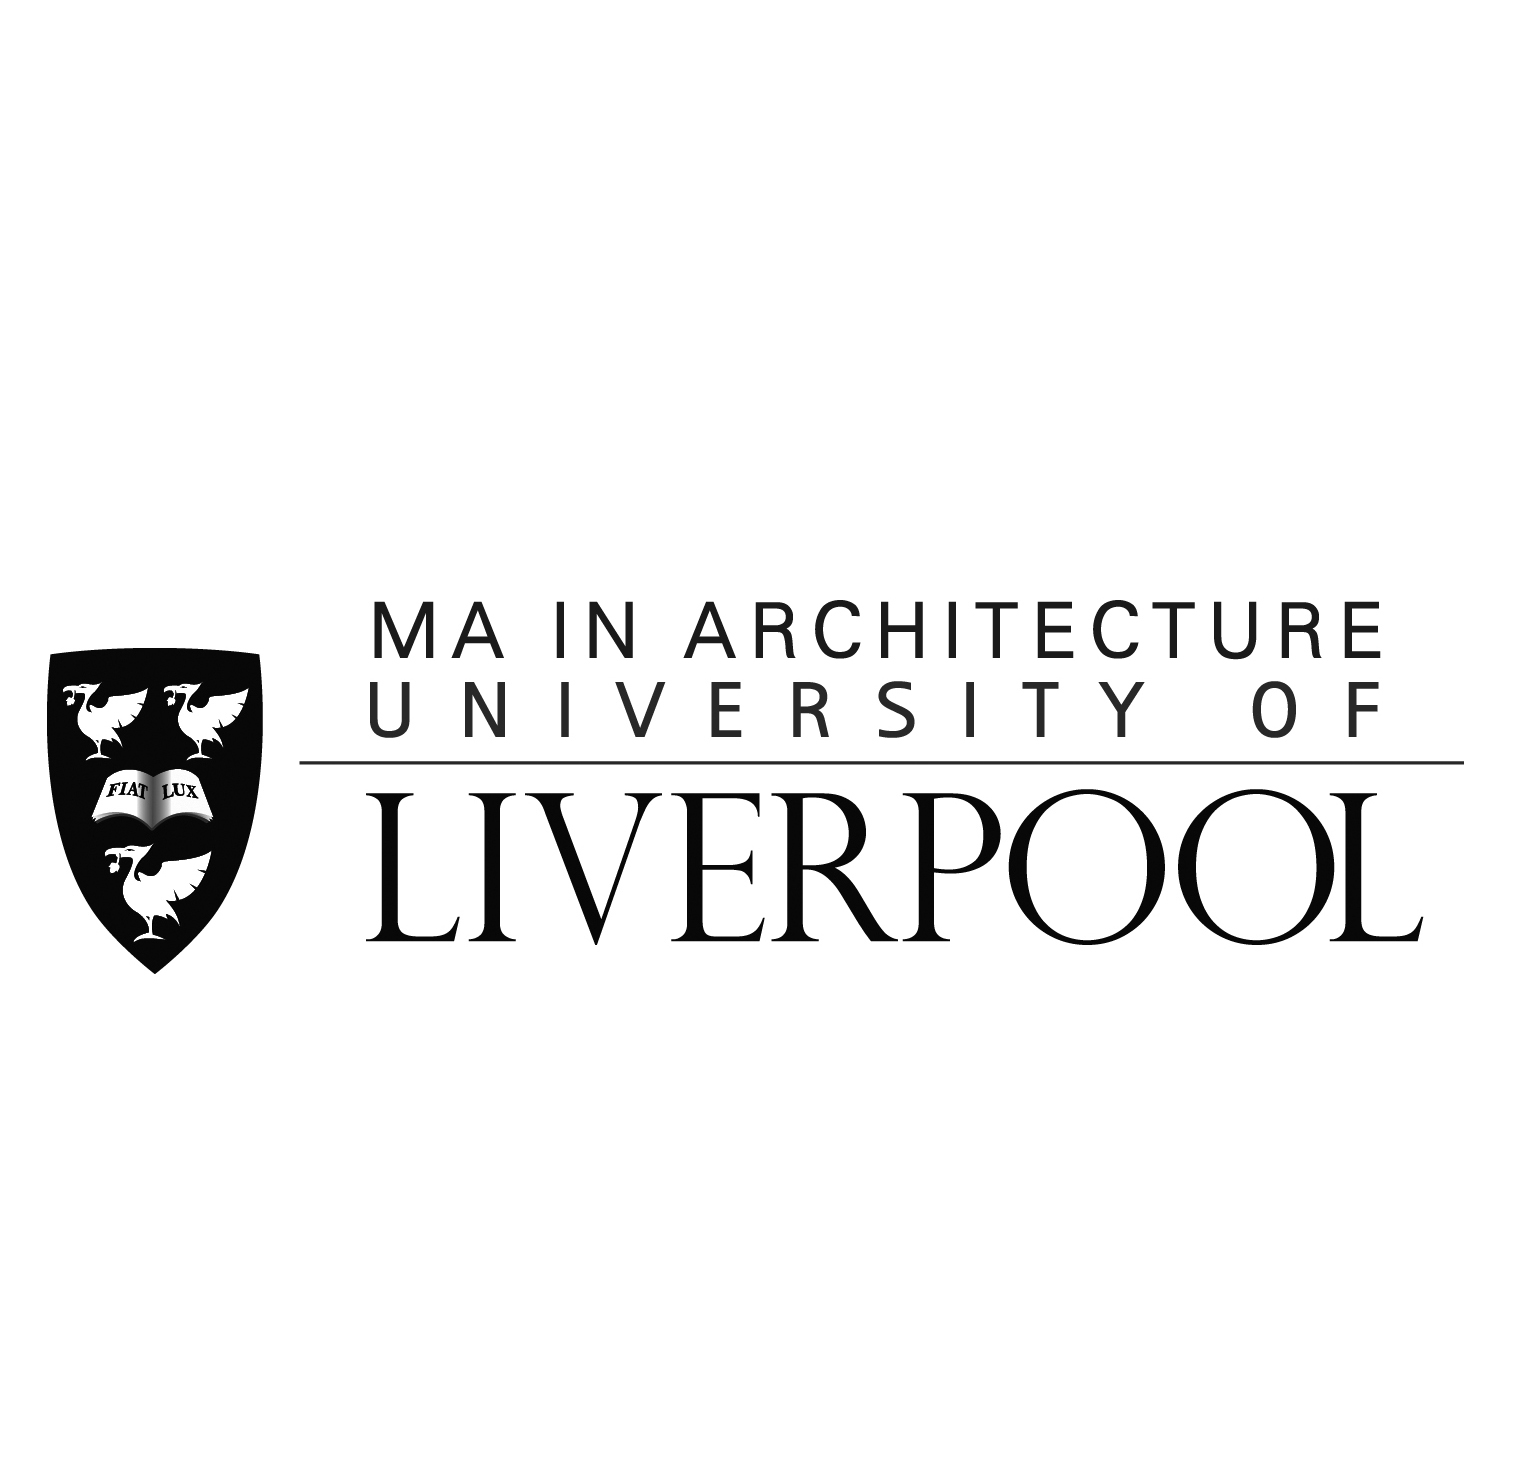 MA in Architecture website launched!